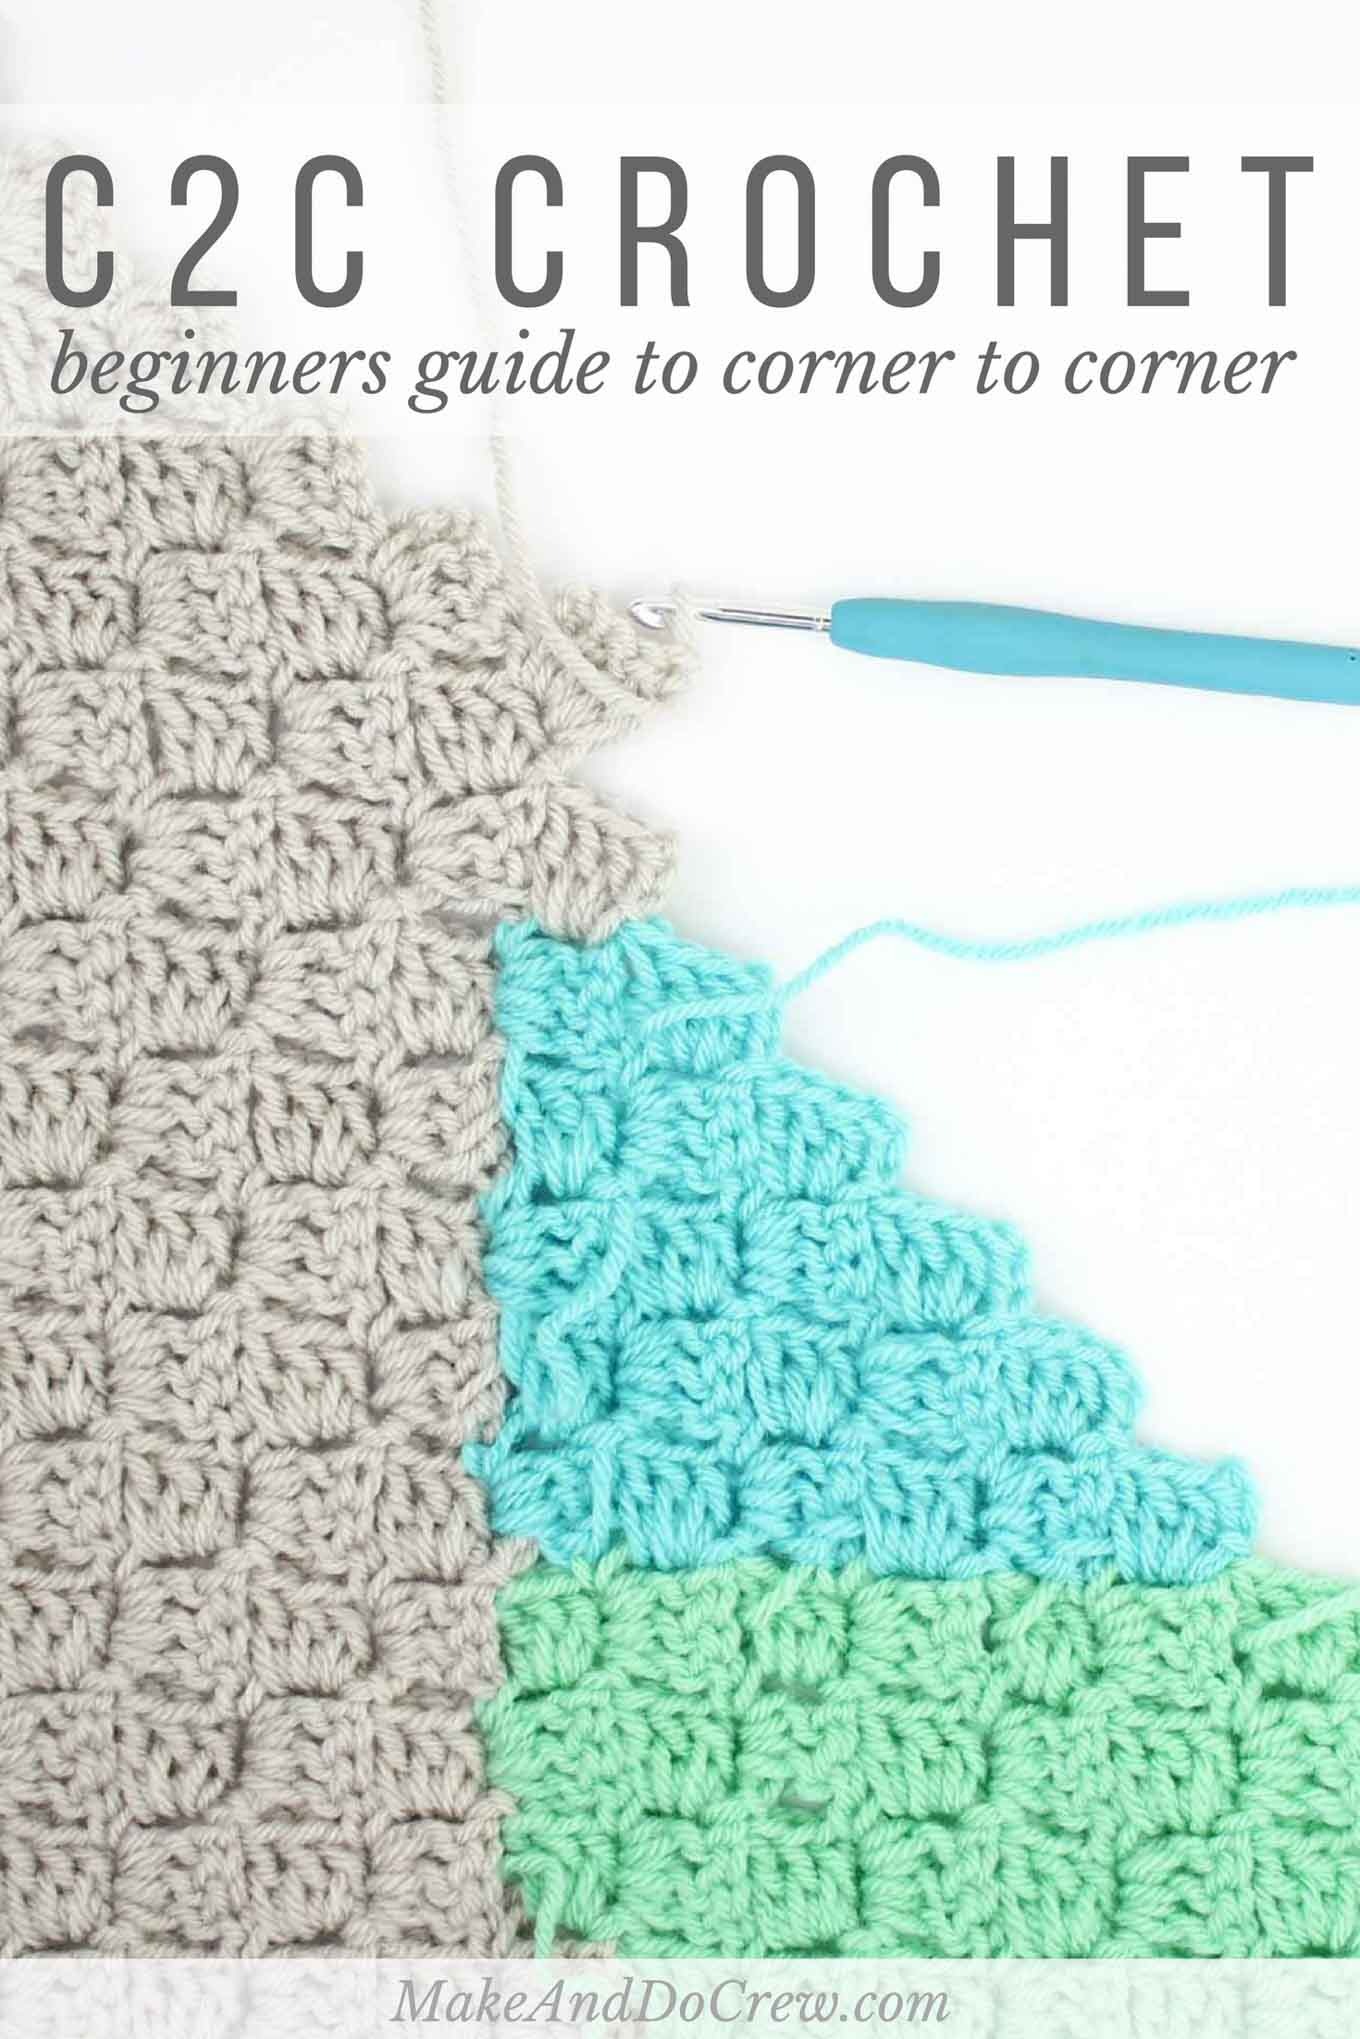 25a48b19de17 How to Corner to Corner Crochet (C2C) for Beginners